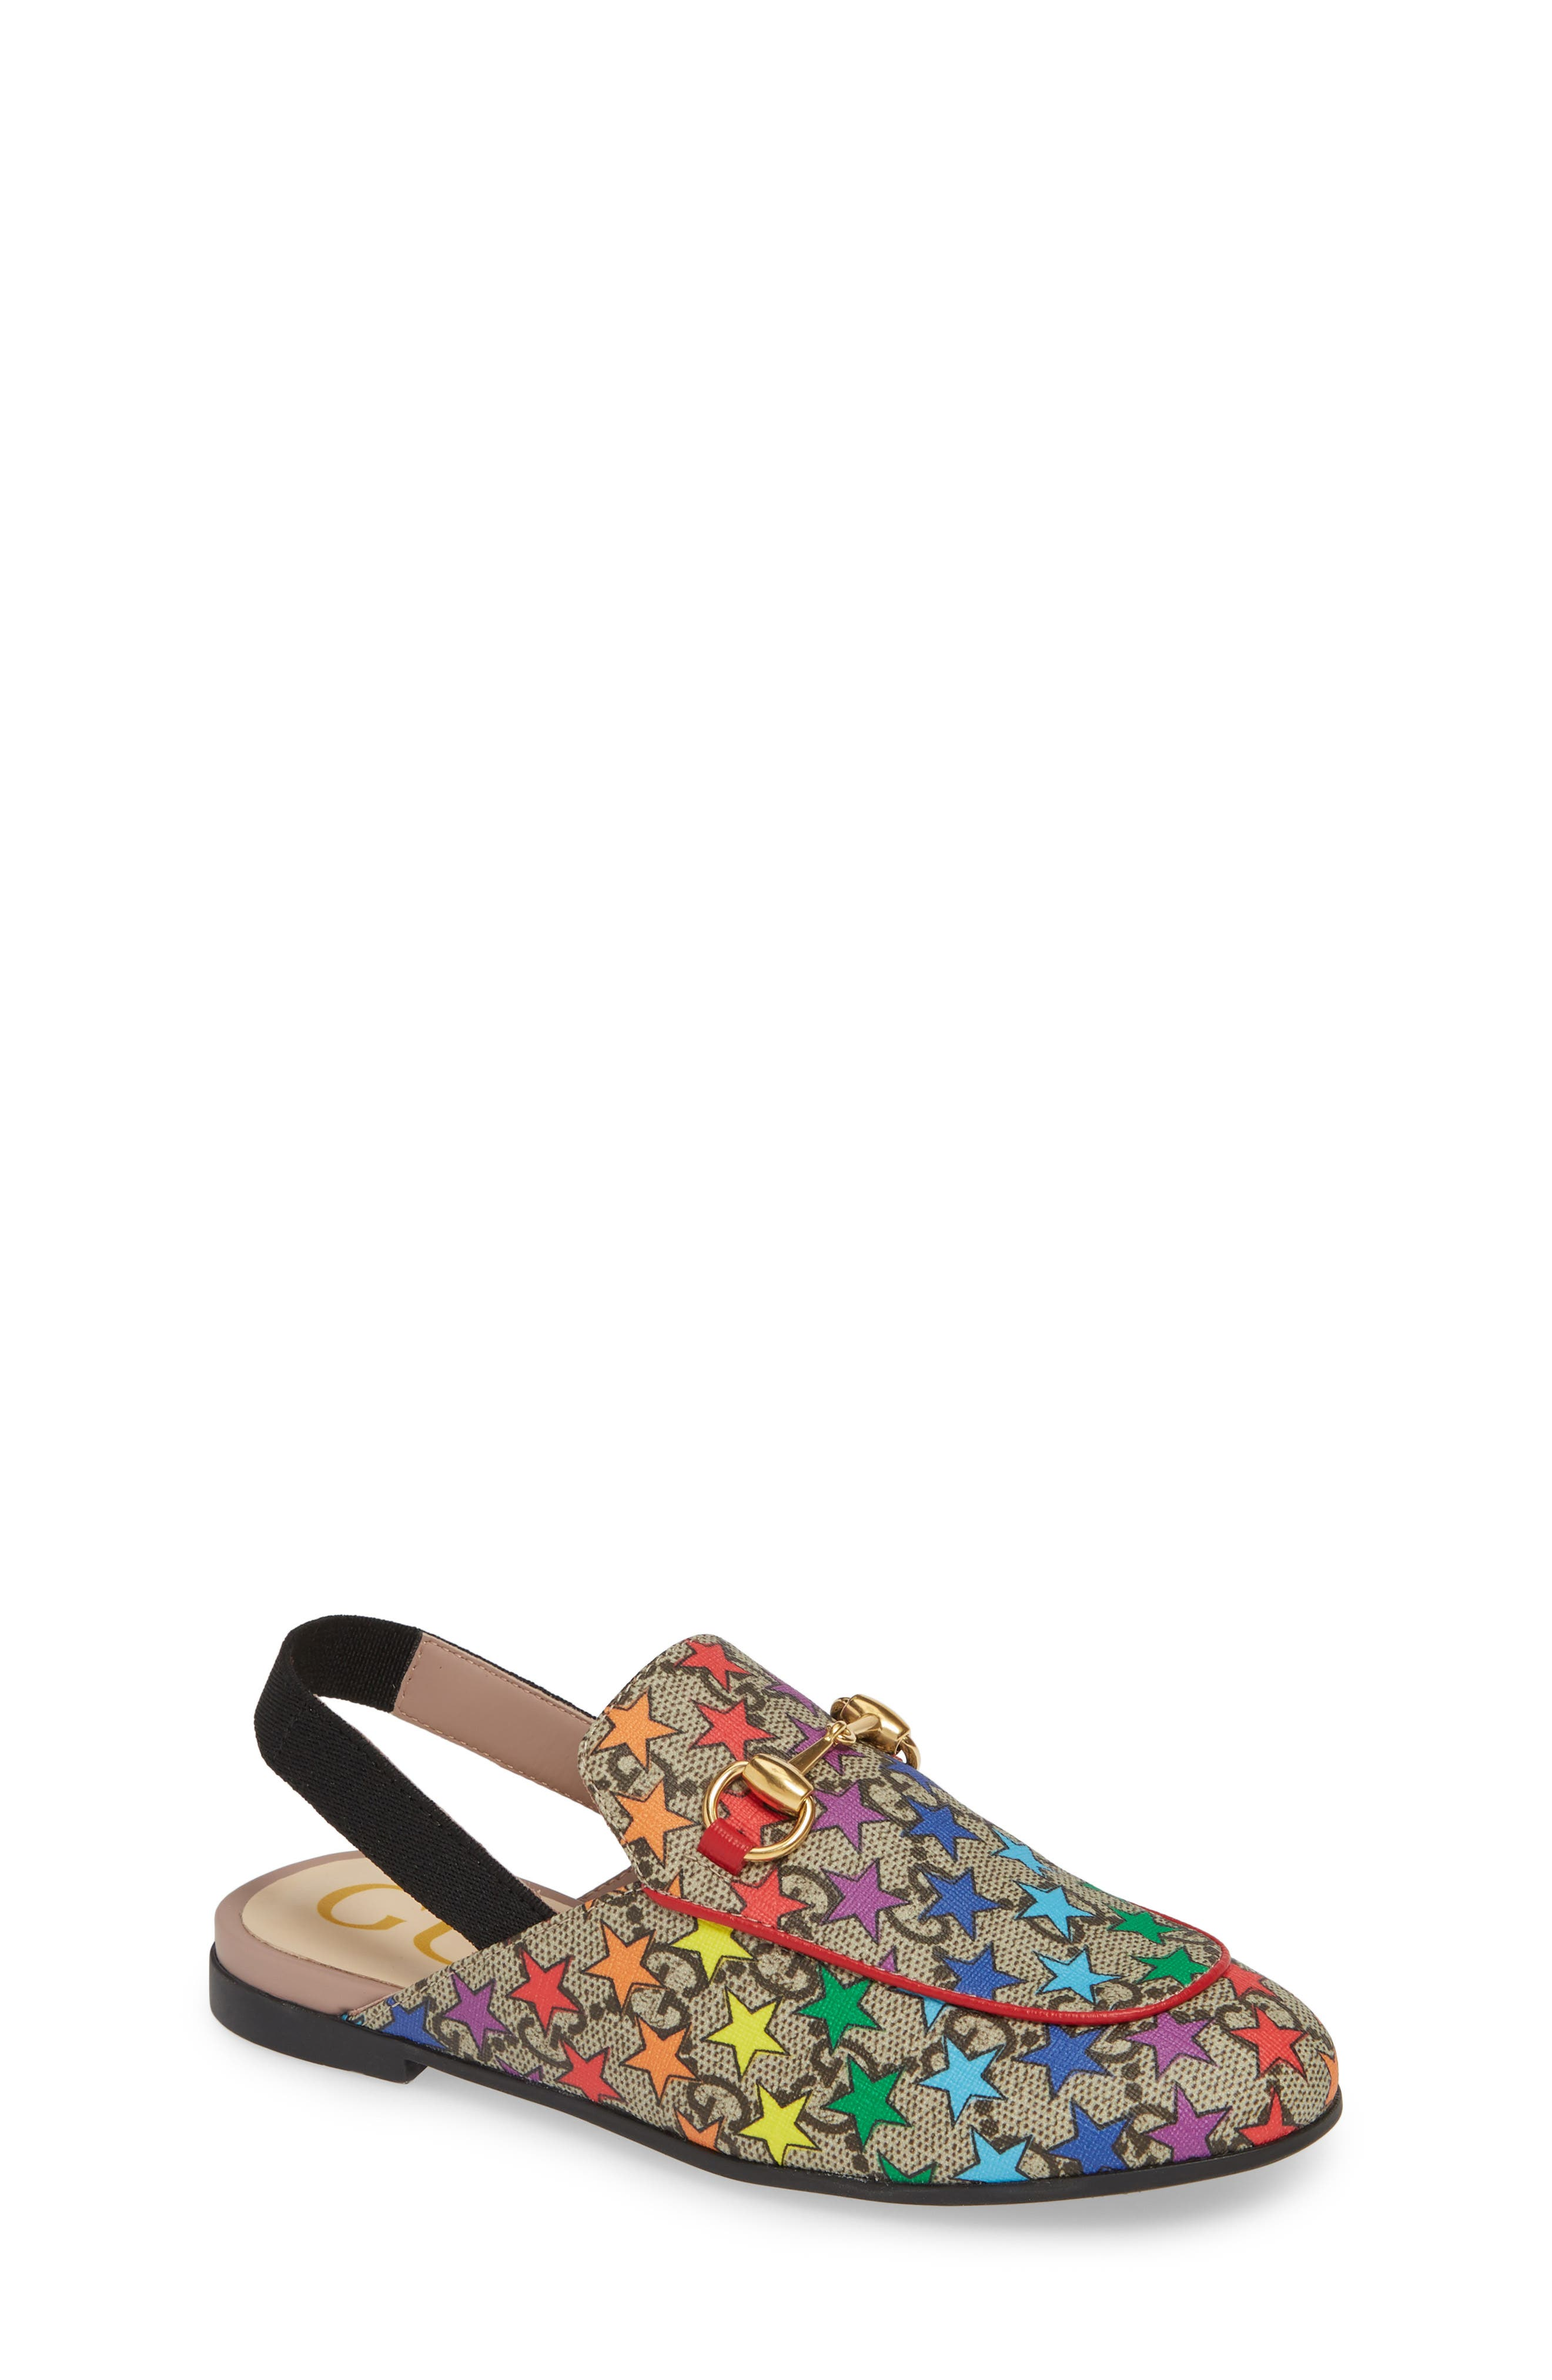 Gucci Princetown Gg Rainbow Star Loafer Mule